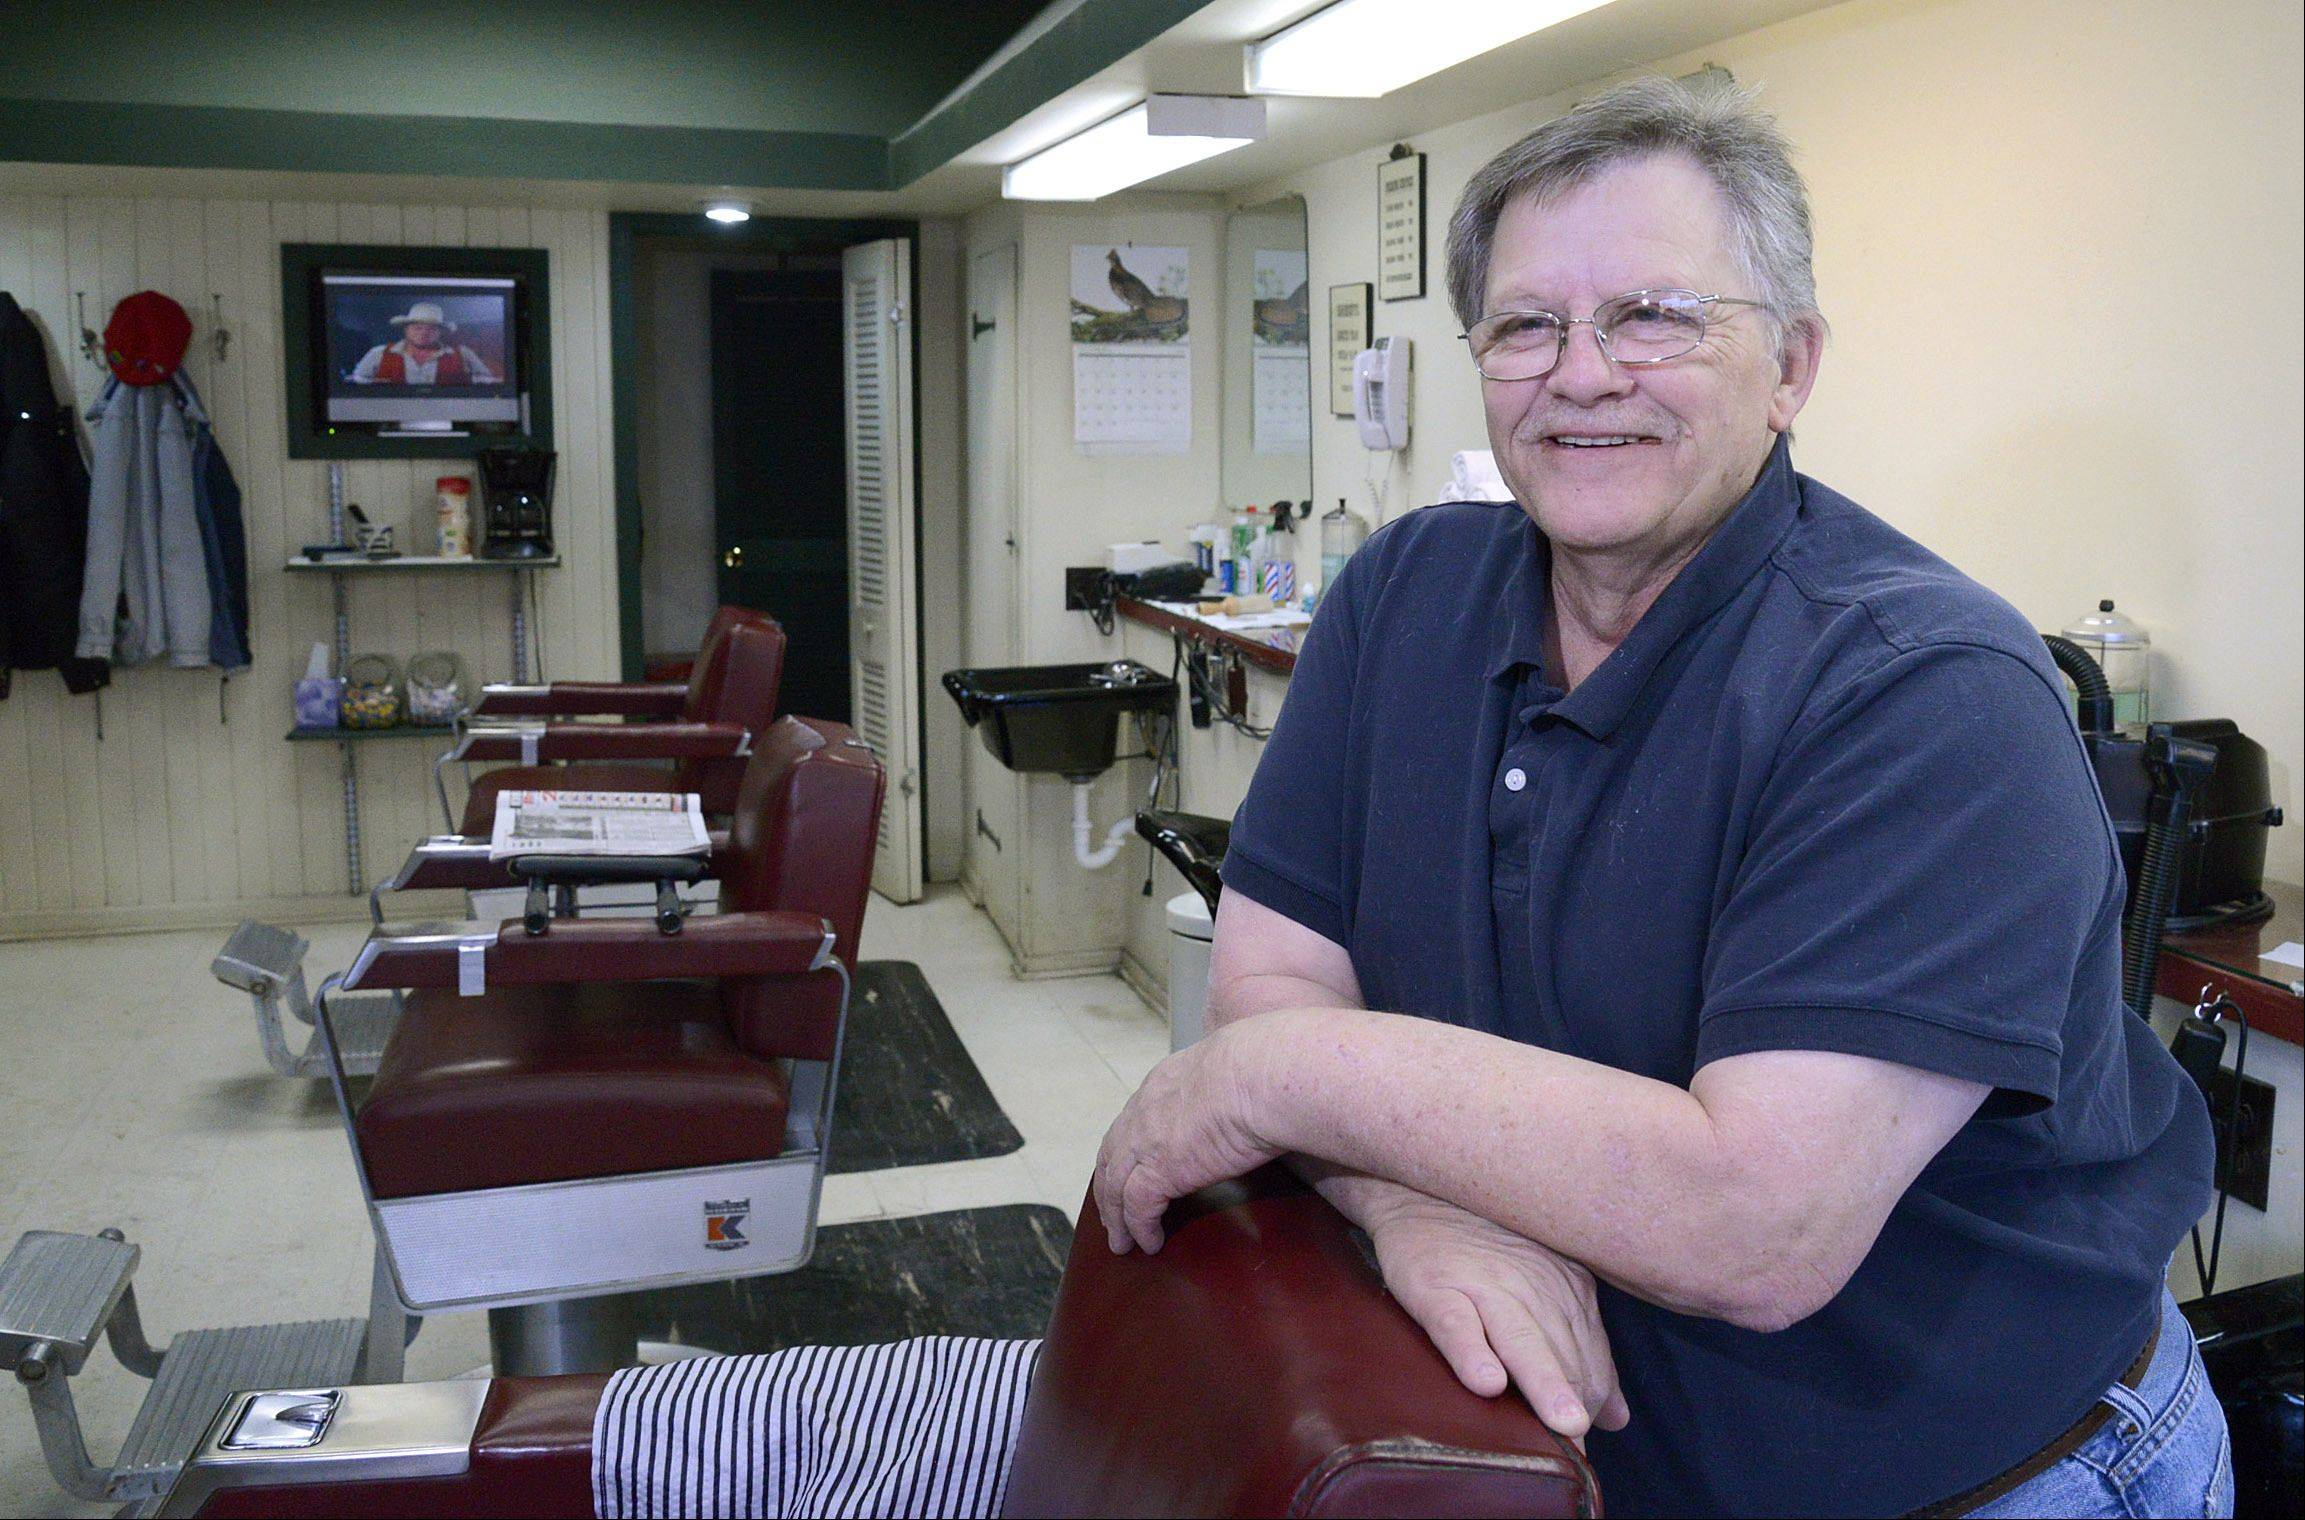 After 45 year as a downtown St. Charles barber, Ron Saltzgiver is retiring. He bought Berry's Barbershop, which first opened in 1910, after he returned from Vietnam in 1968.